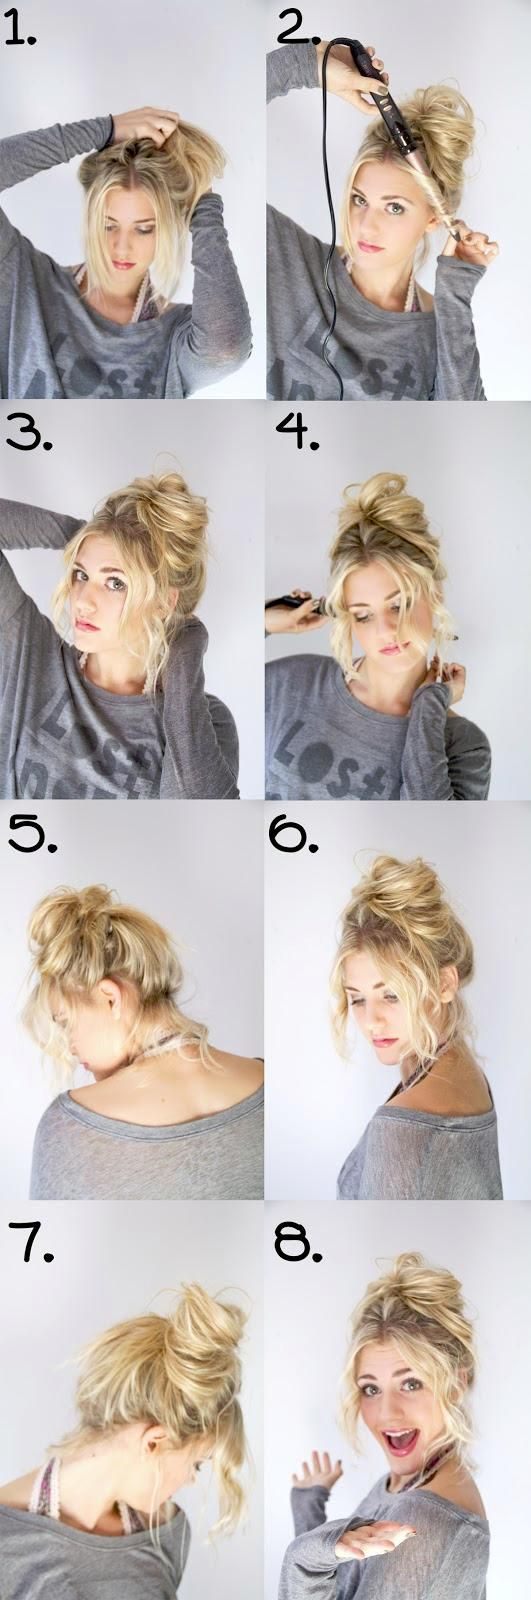 76 best Hair images on Pinterest | Hairstyle ideas, Easy hairstyle ...